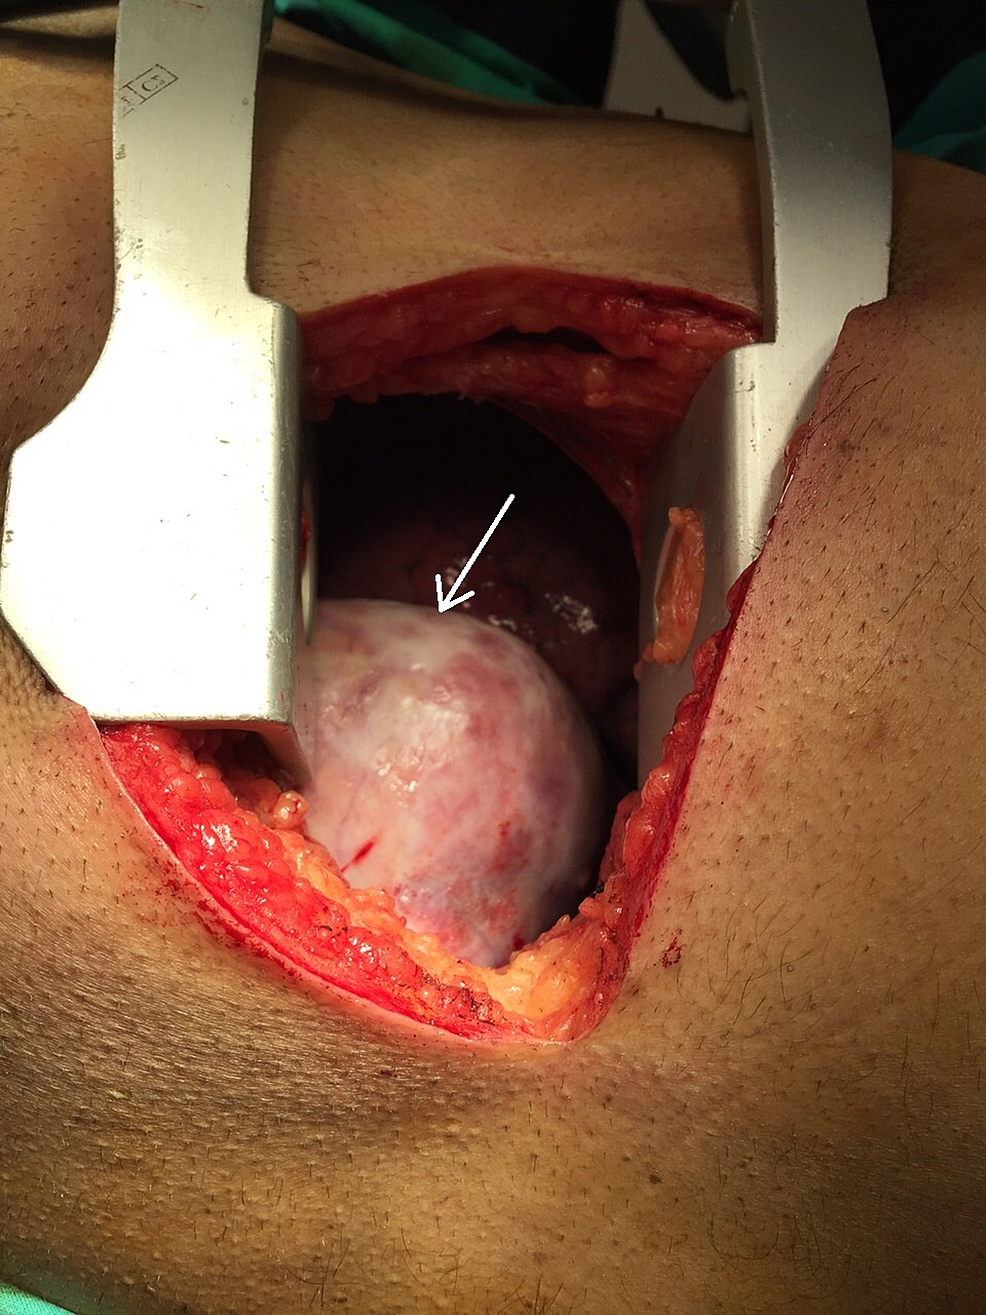 Intra-operative-view-of-the-mass-(white-arrow)